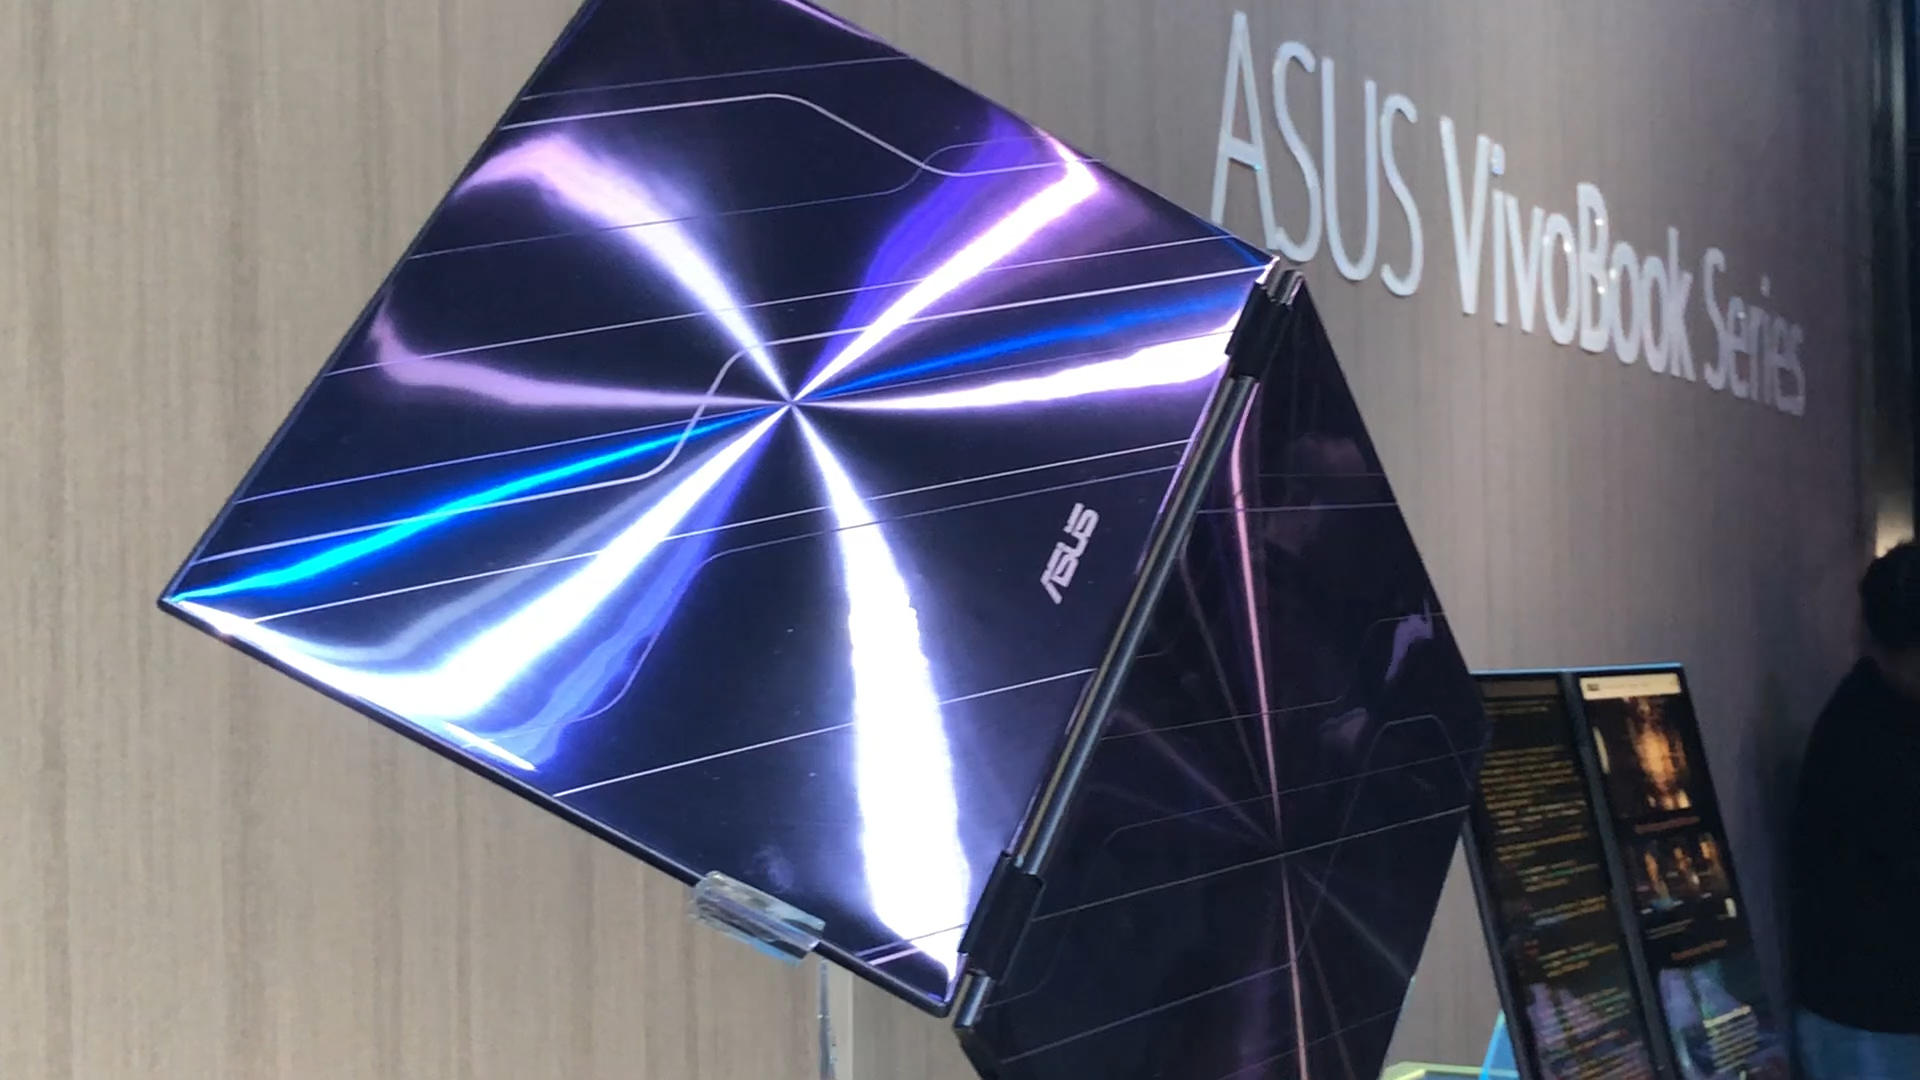 Video: The Asus concept Project Precog is the dream laptop of the future